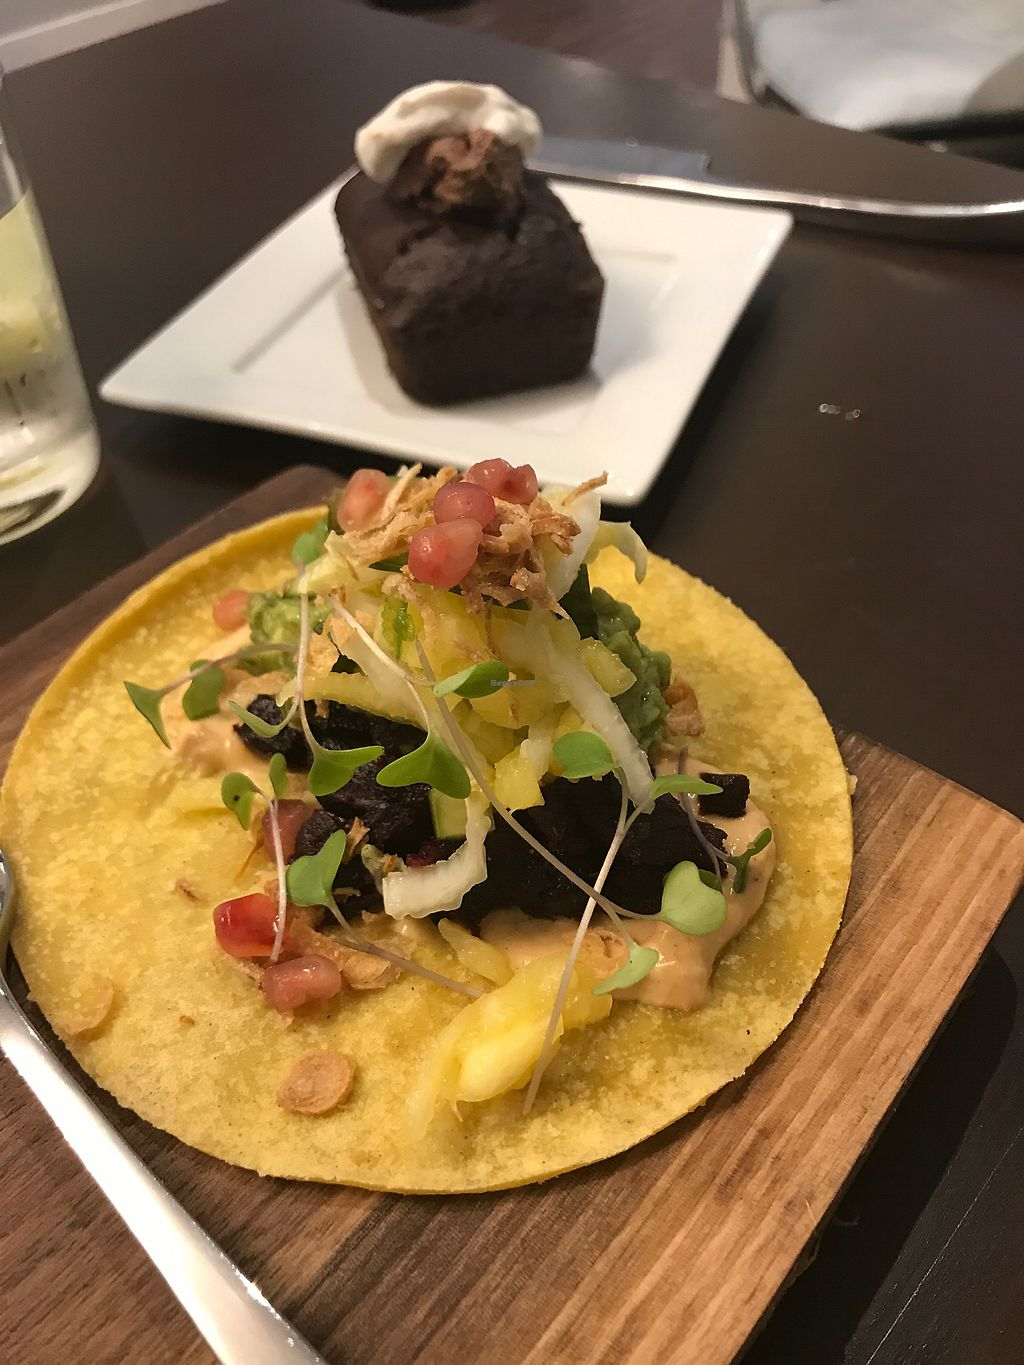 """Photo of CLOSED: Solasta Foods  by <a href=""""/members/profile/GreenSarah"""">GreenSarah</a> <br/>Tacos <br/> August 10, 2017  - <a href='/contact/abuse/image/88402/291198'>Report</a>"""